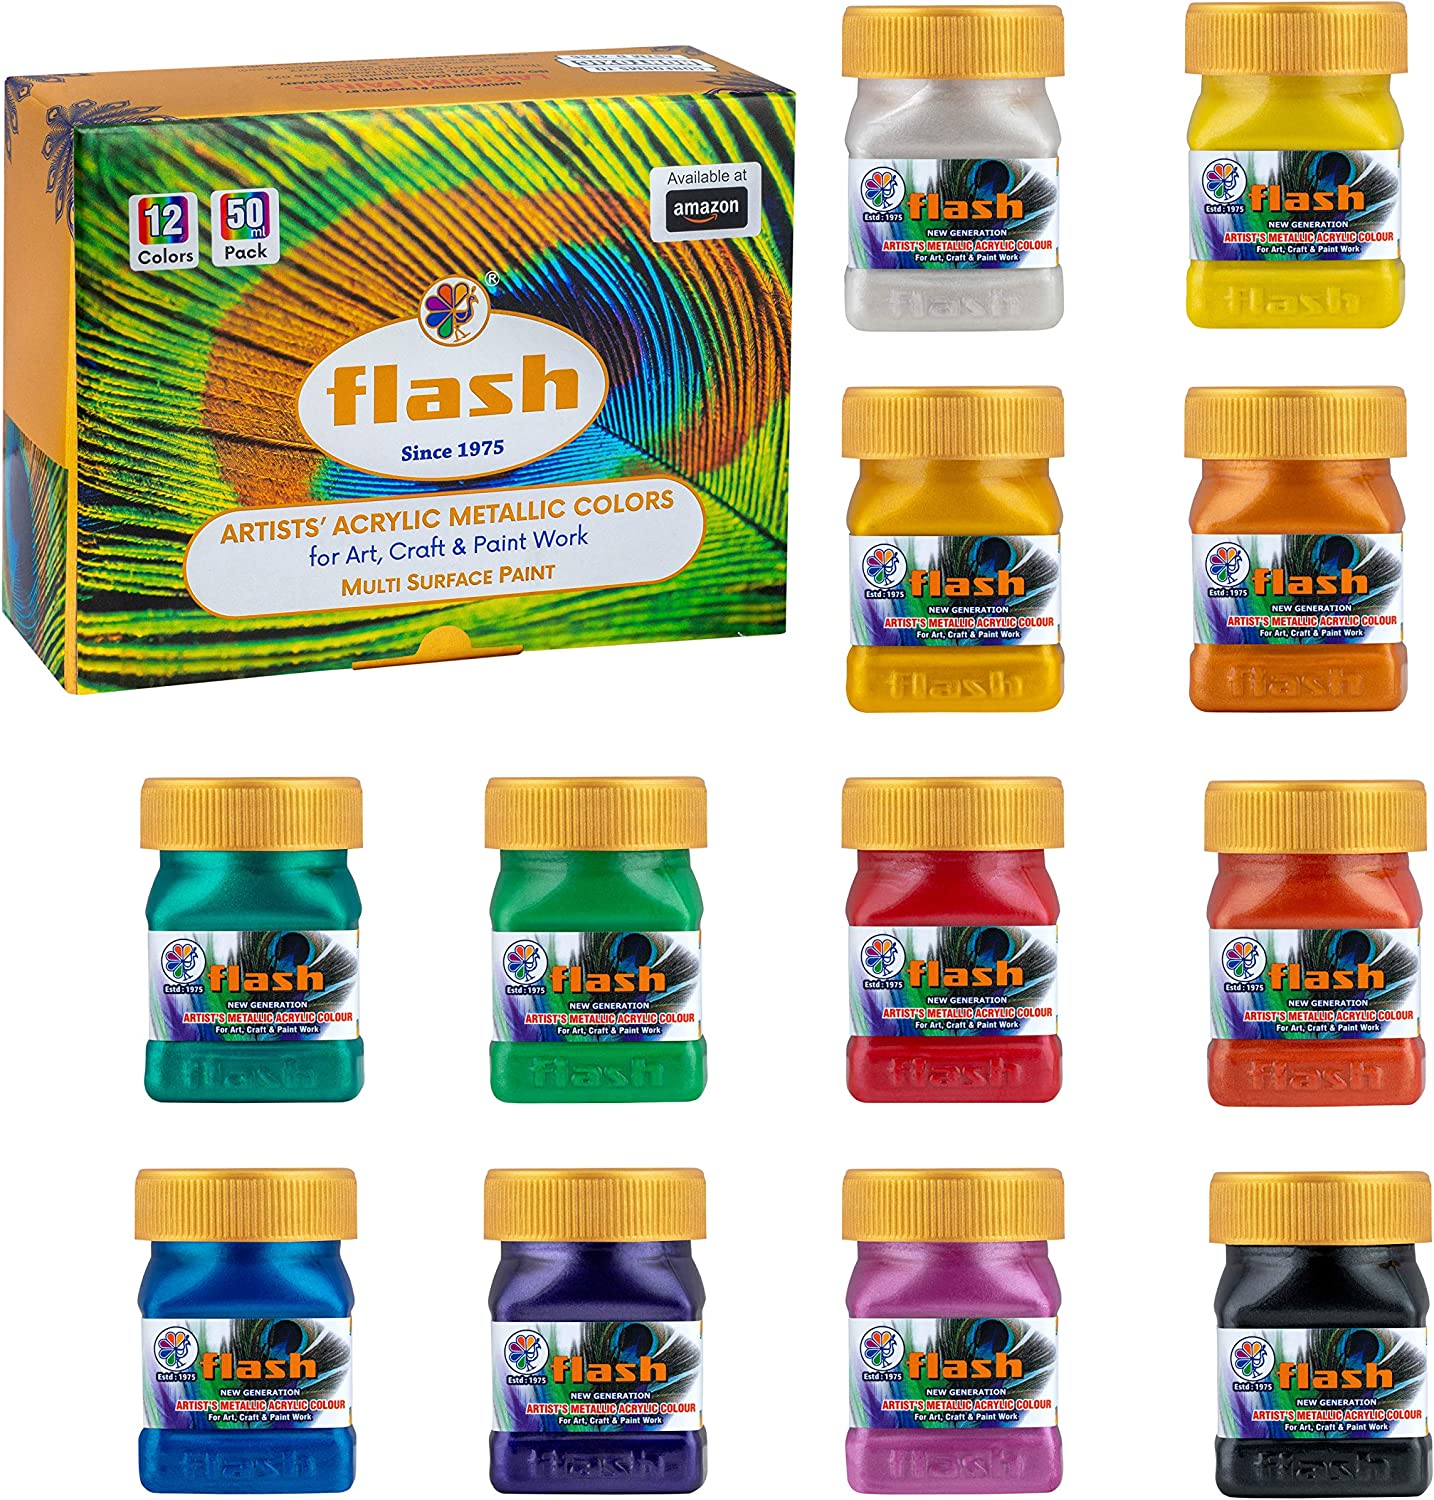 Flash Premium Iridescent Metallic Acrylic Paint Set 12 Shades,(50ml,1.7 oz), Highly Pigmented & Fade-Resistant, Non-Toxic, Multi-Surface Paint for Artists, Hobby Painters & Kids